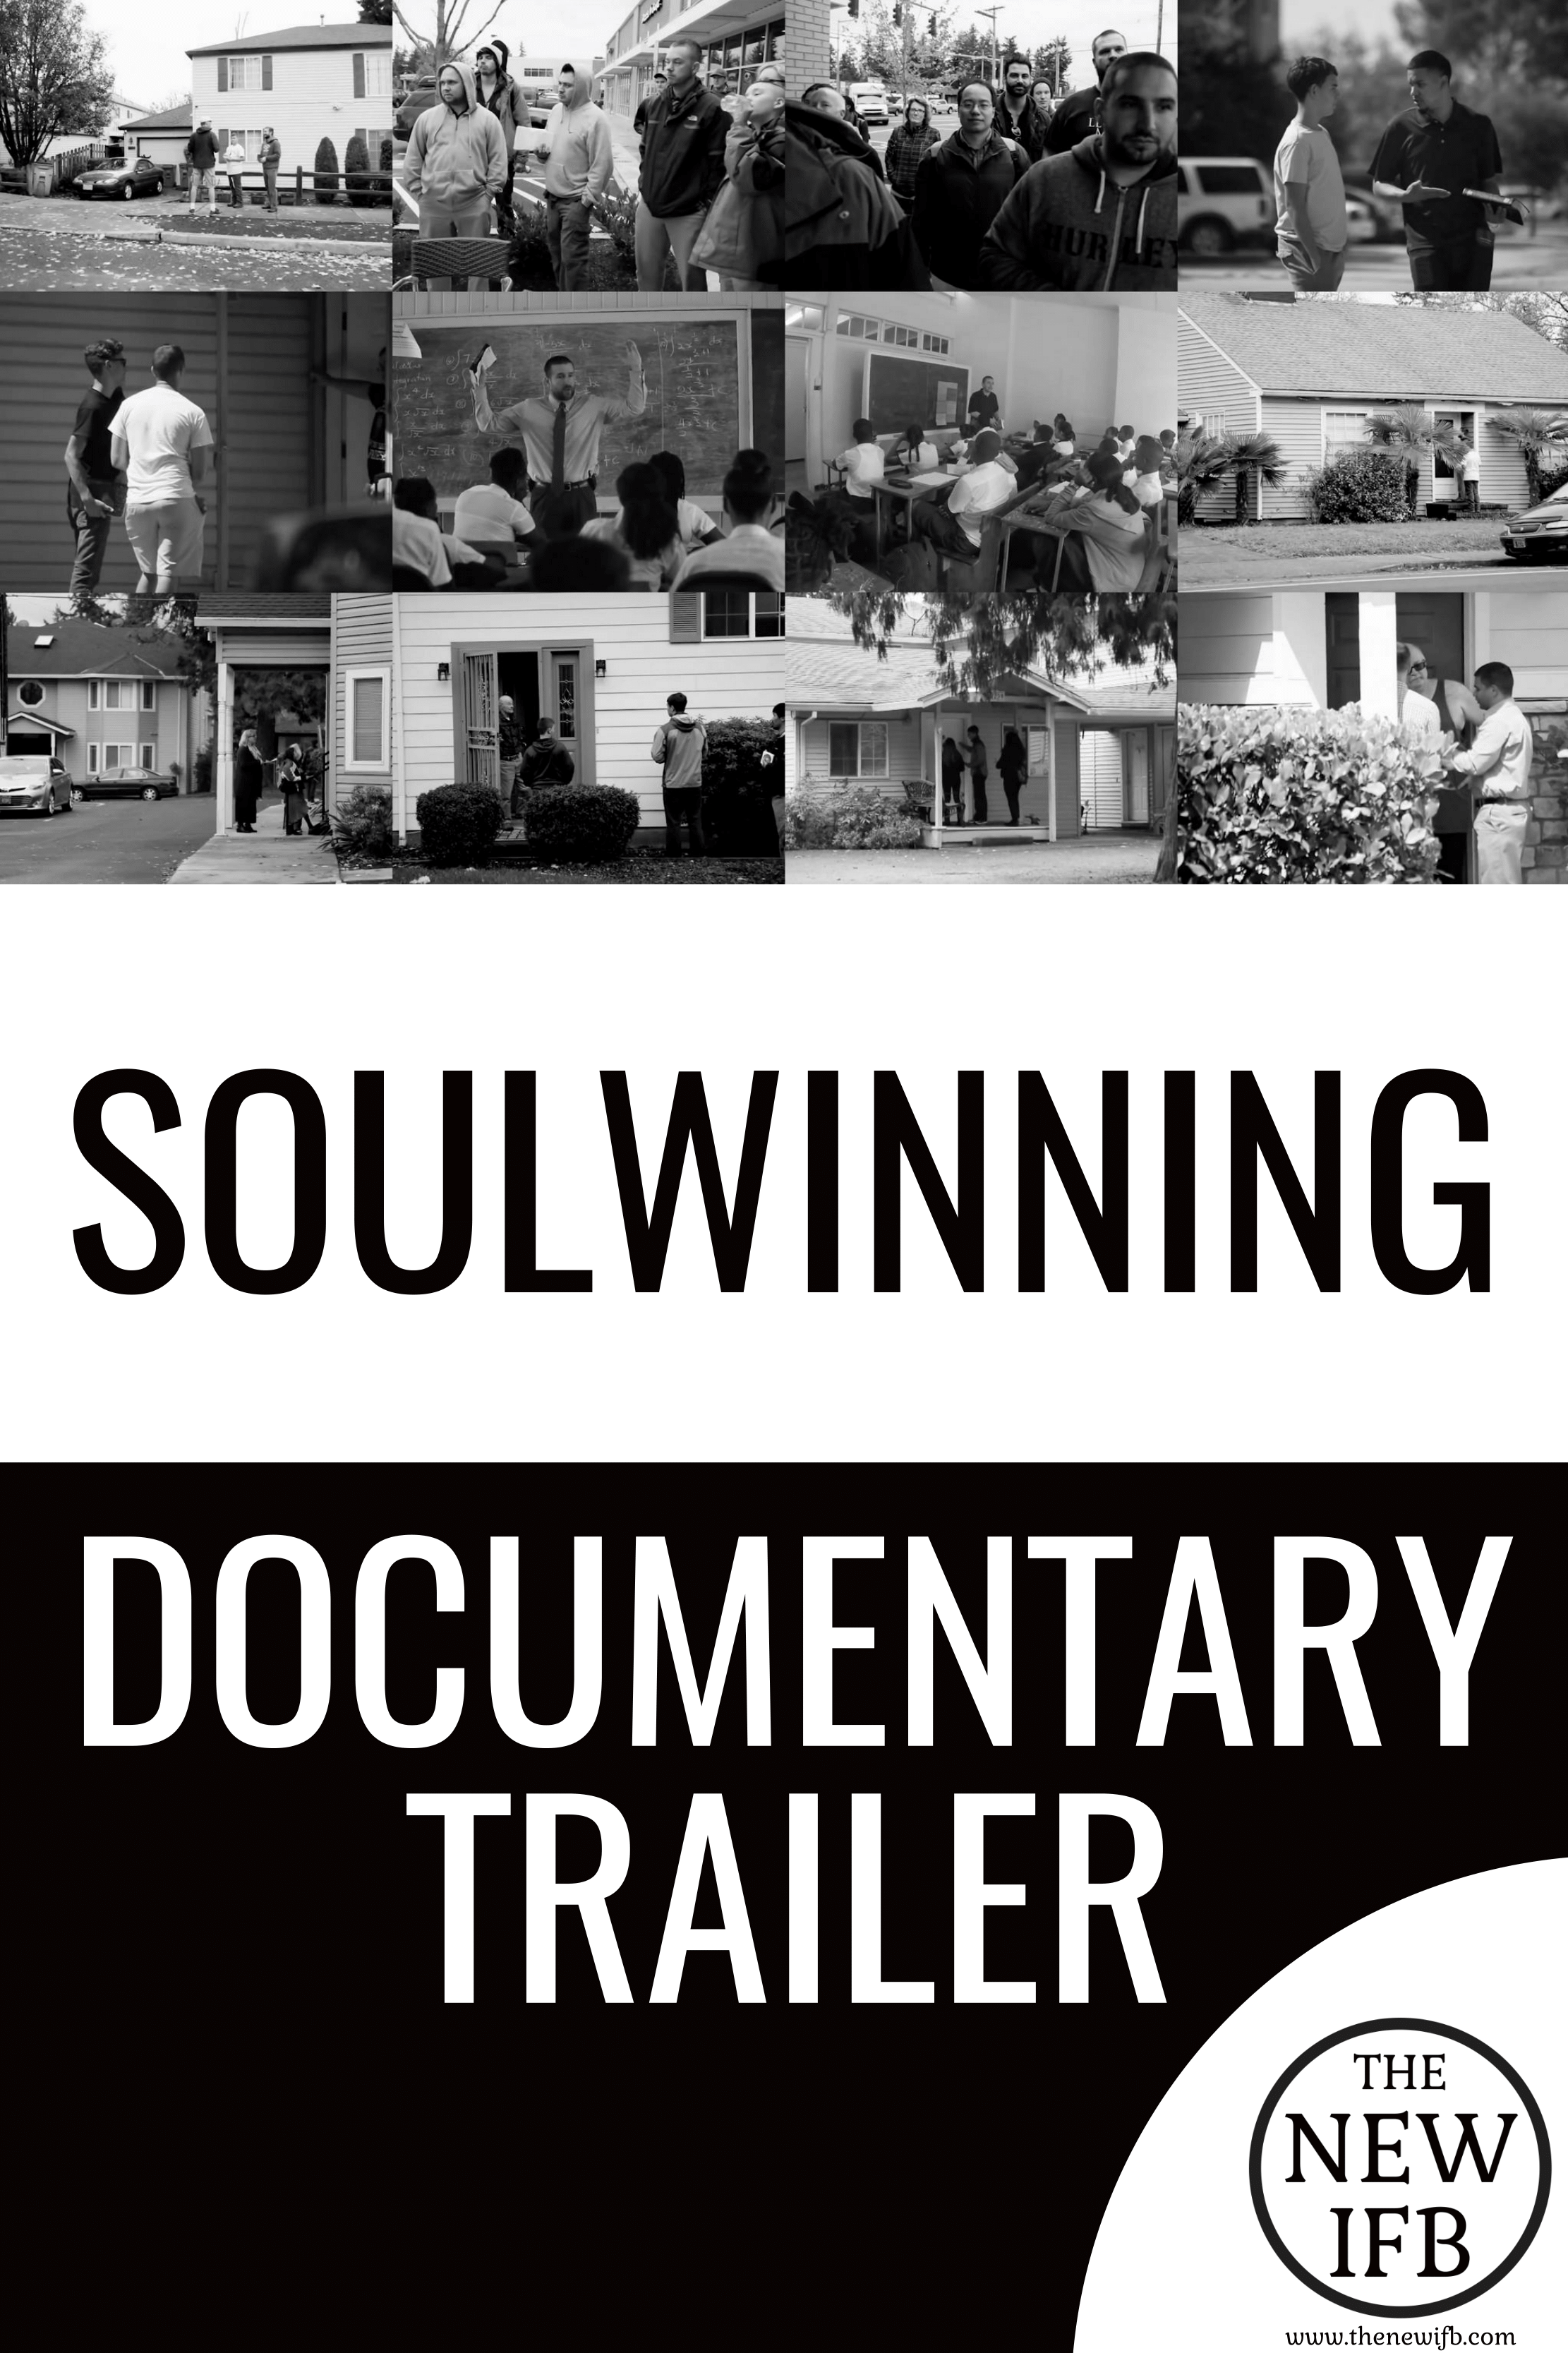 Watch the trailer for an upcoming documentary about preaching the